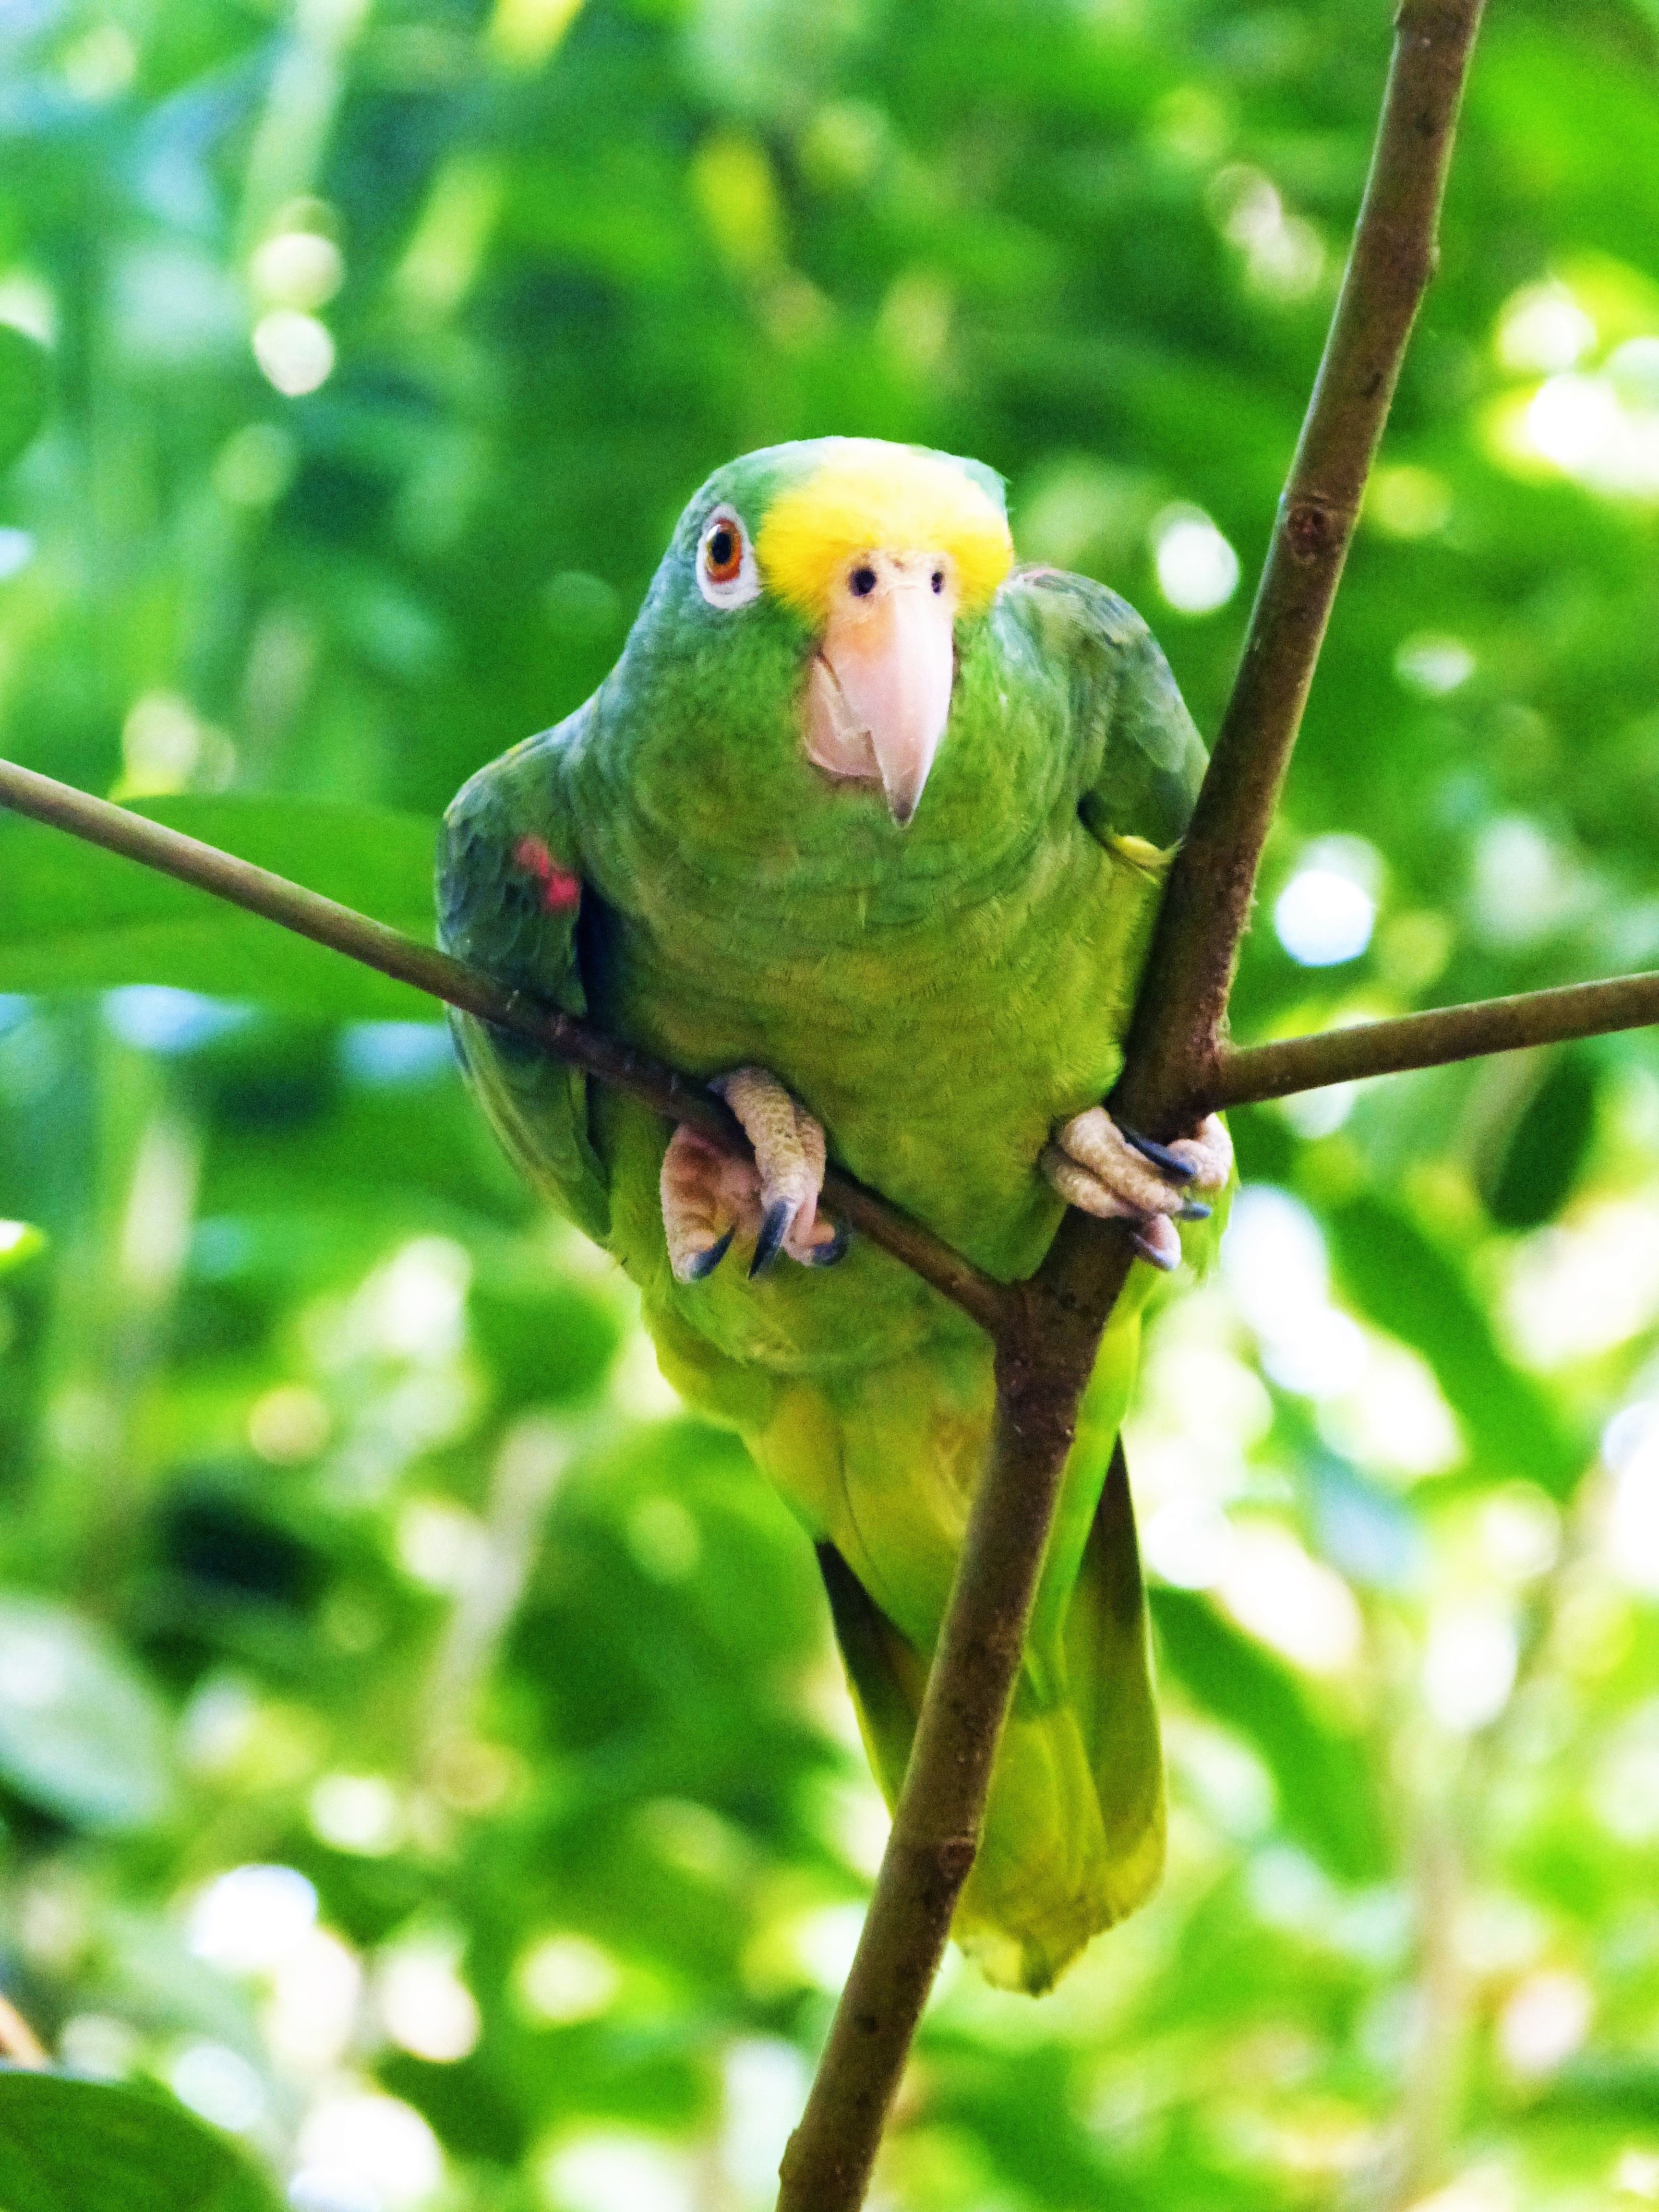 Colombia is home of the second largest biodiversity on earth. In fact, Colombia is home to over 130,000 species of plants. This cute little parrot does also find its place here. #travelandmakeadifference #ecotourism #travel #animal #parrot #ecotourism #biodiversity #earth #nature #fauna #wildlife